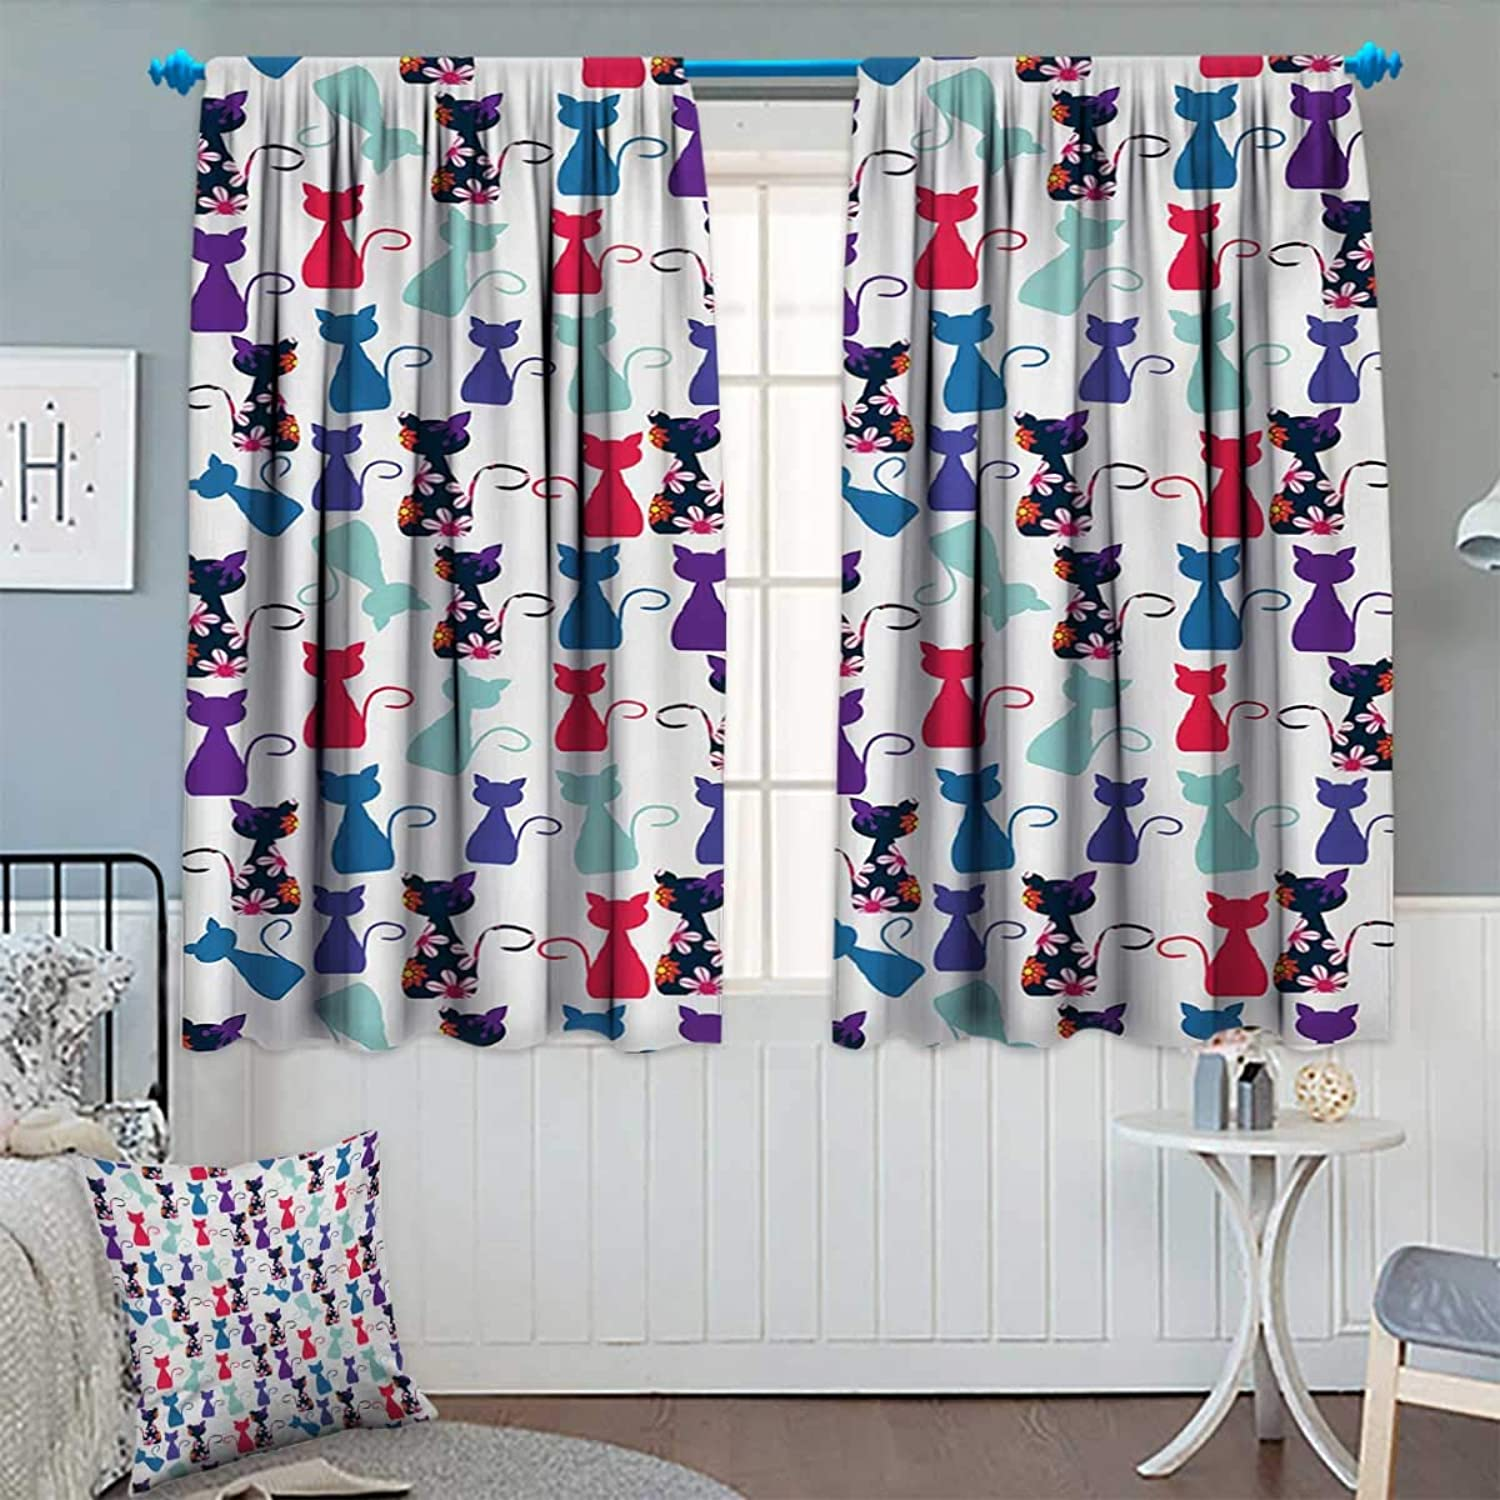 Cat Print,Blackout Curtain,Baby Animals in colors with Flowers Cute Funny Kittens Artistic Pattern Print,Thermal Insulating Curtain,Multicolor,W55 x L63 inch